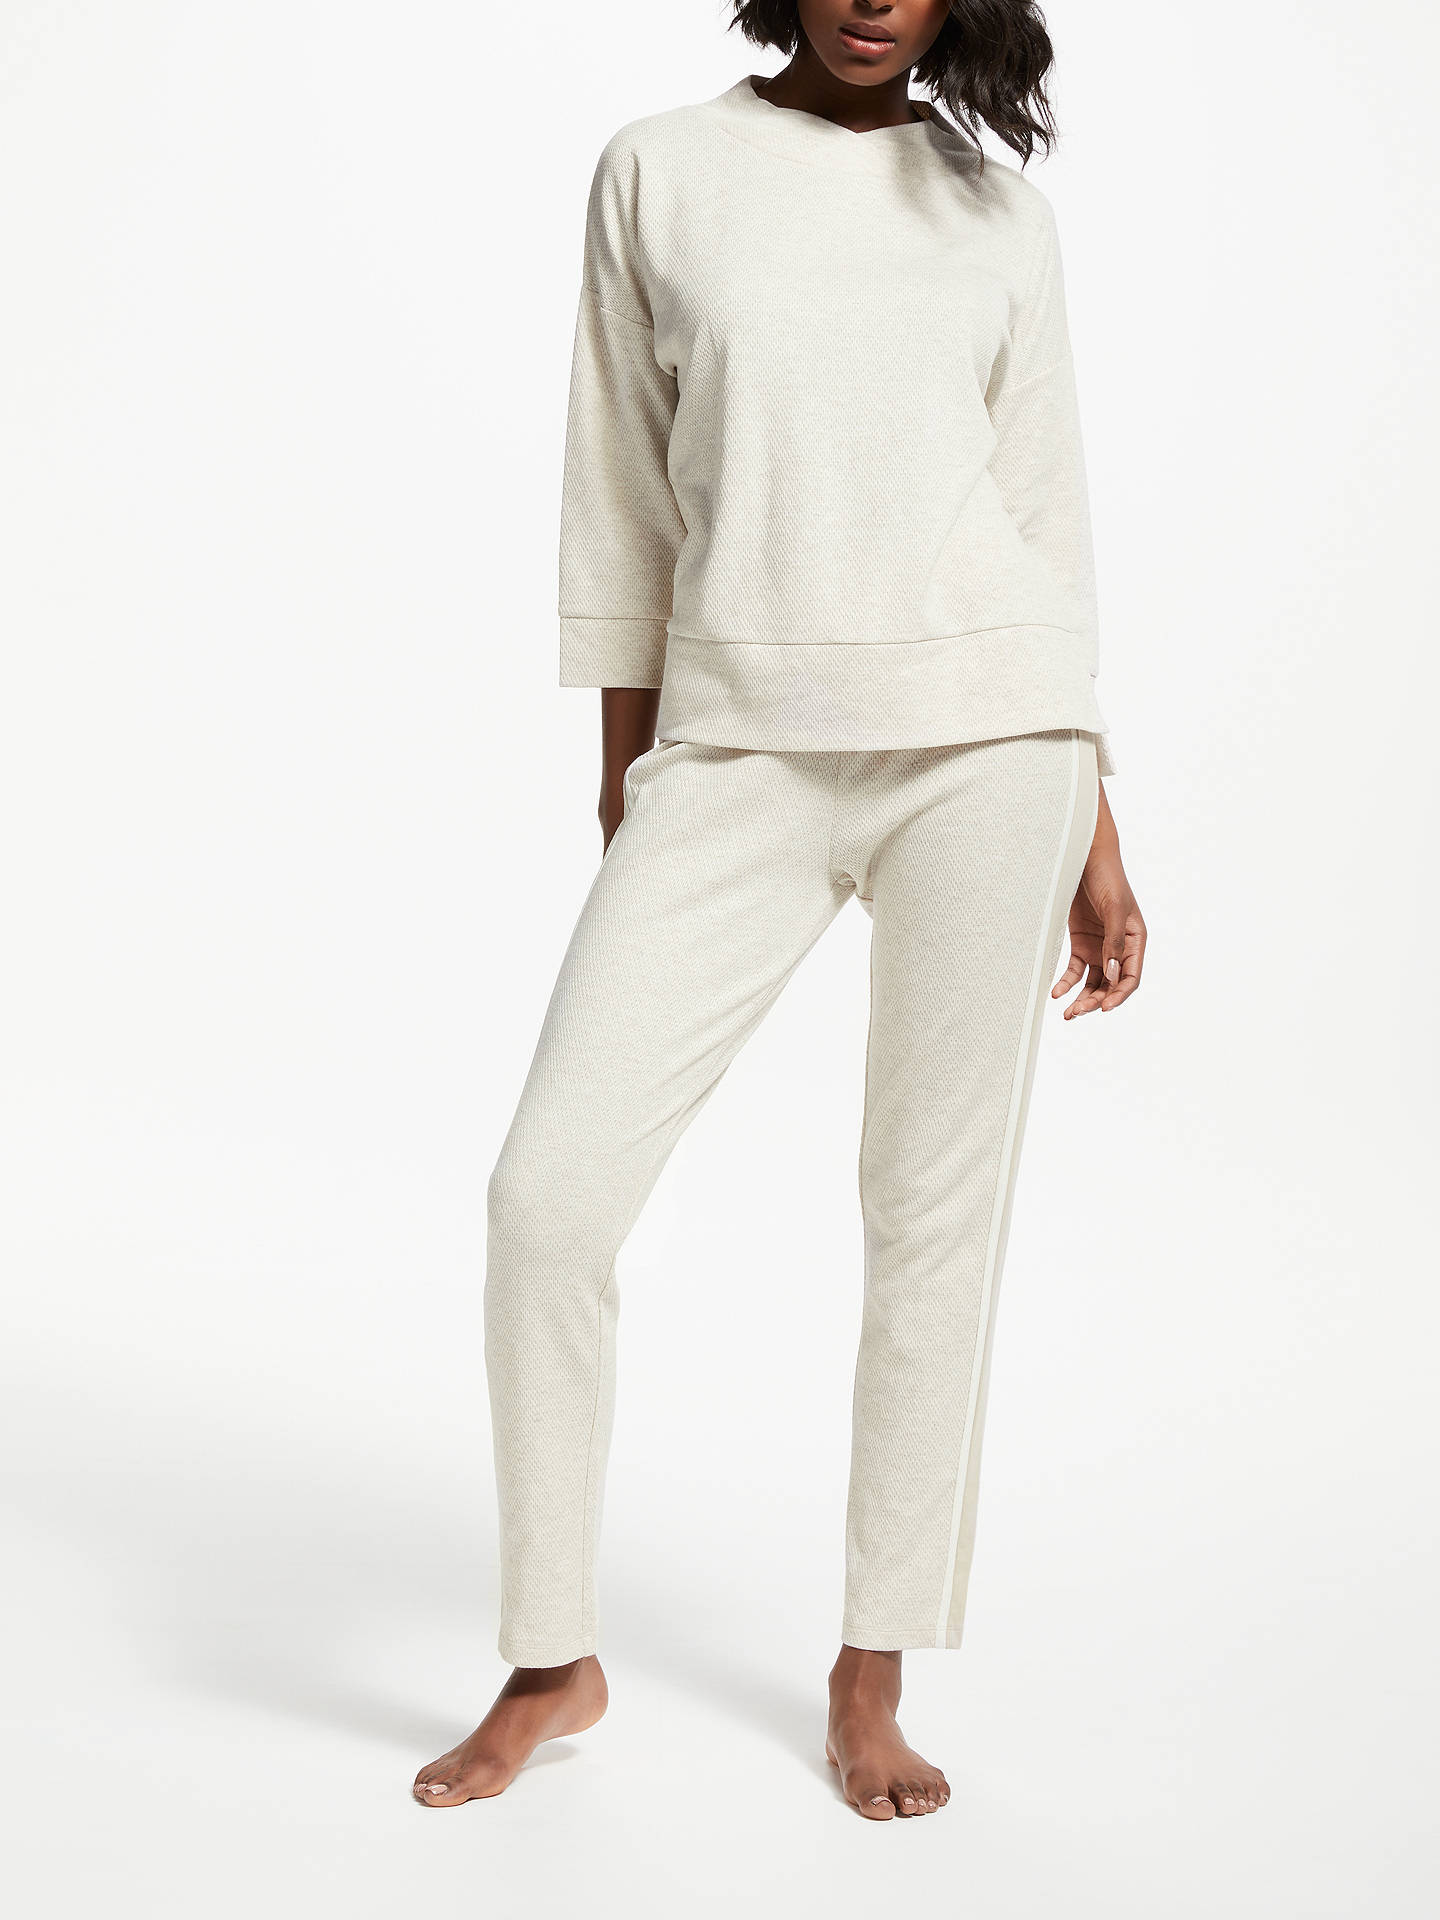 BuyJohn Lewis & Partners Contrast Side Jogger Lounge Bottoms, Neutral, 16 Online at johnlewis.com